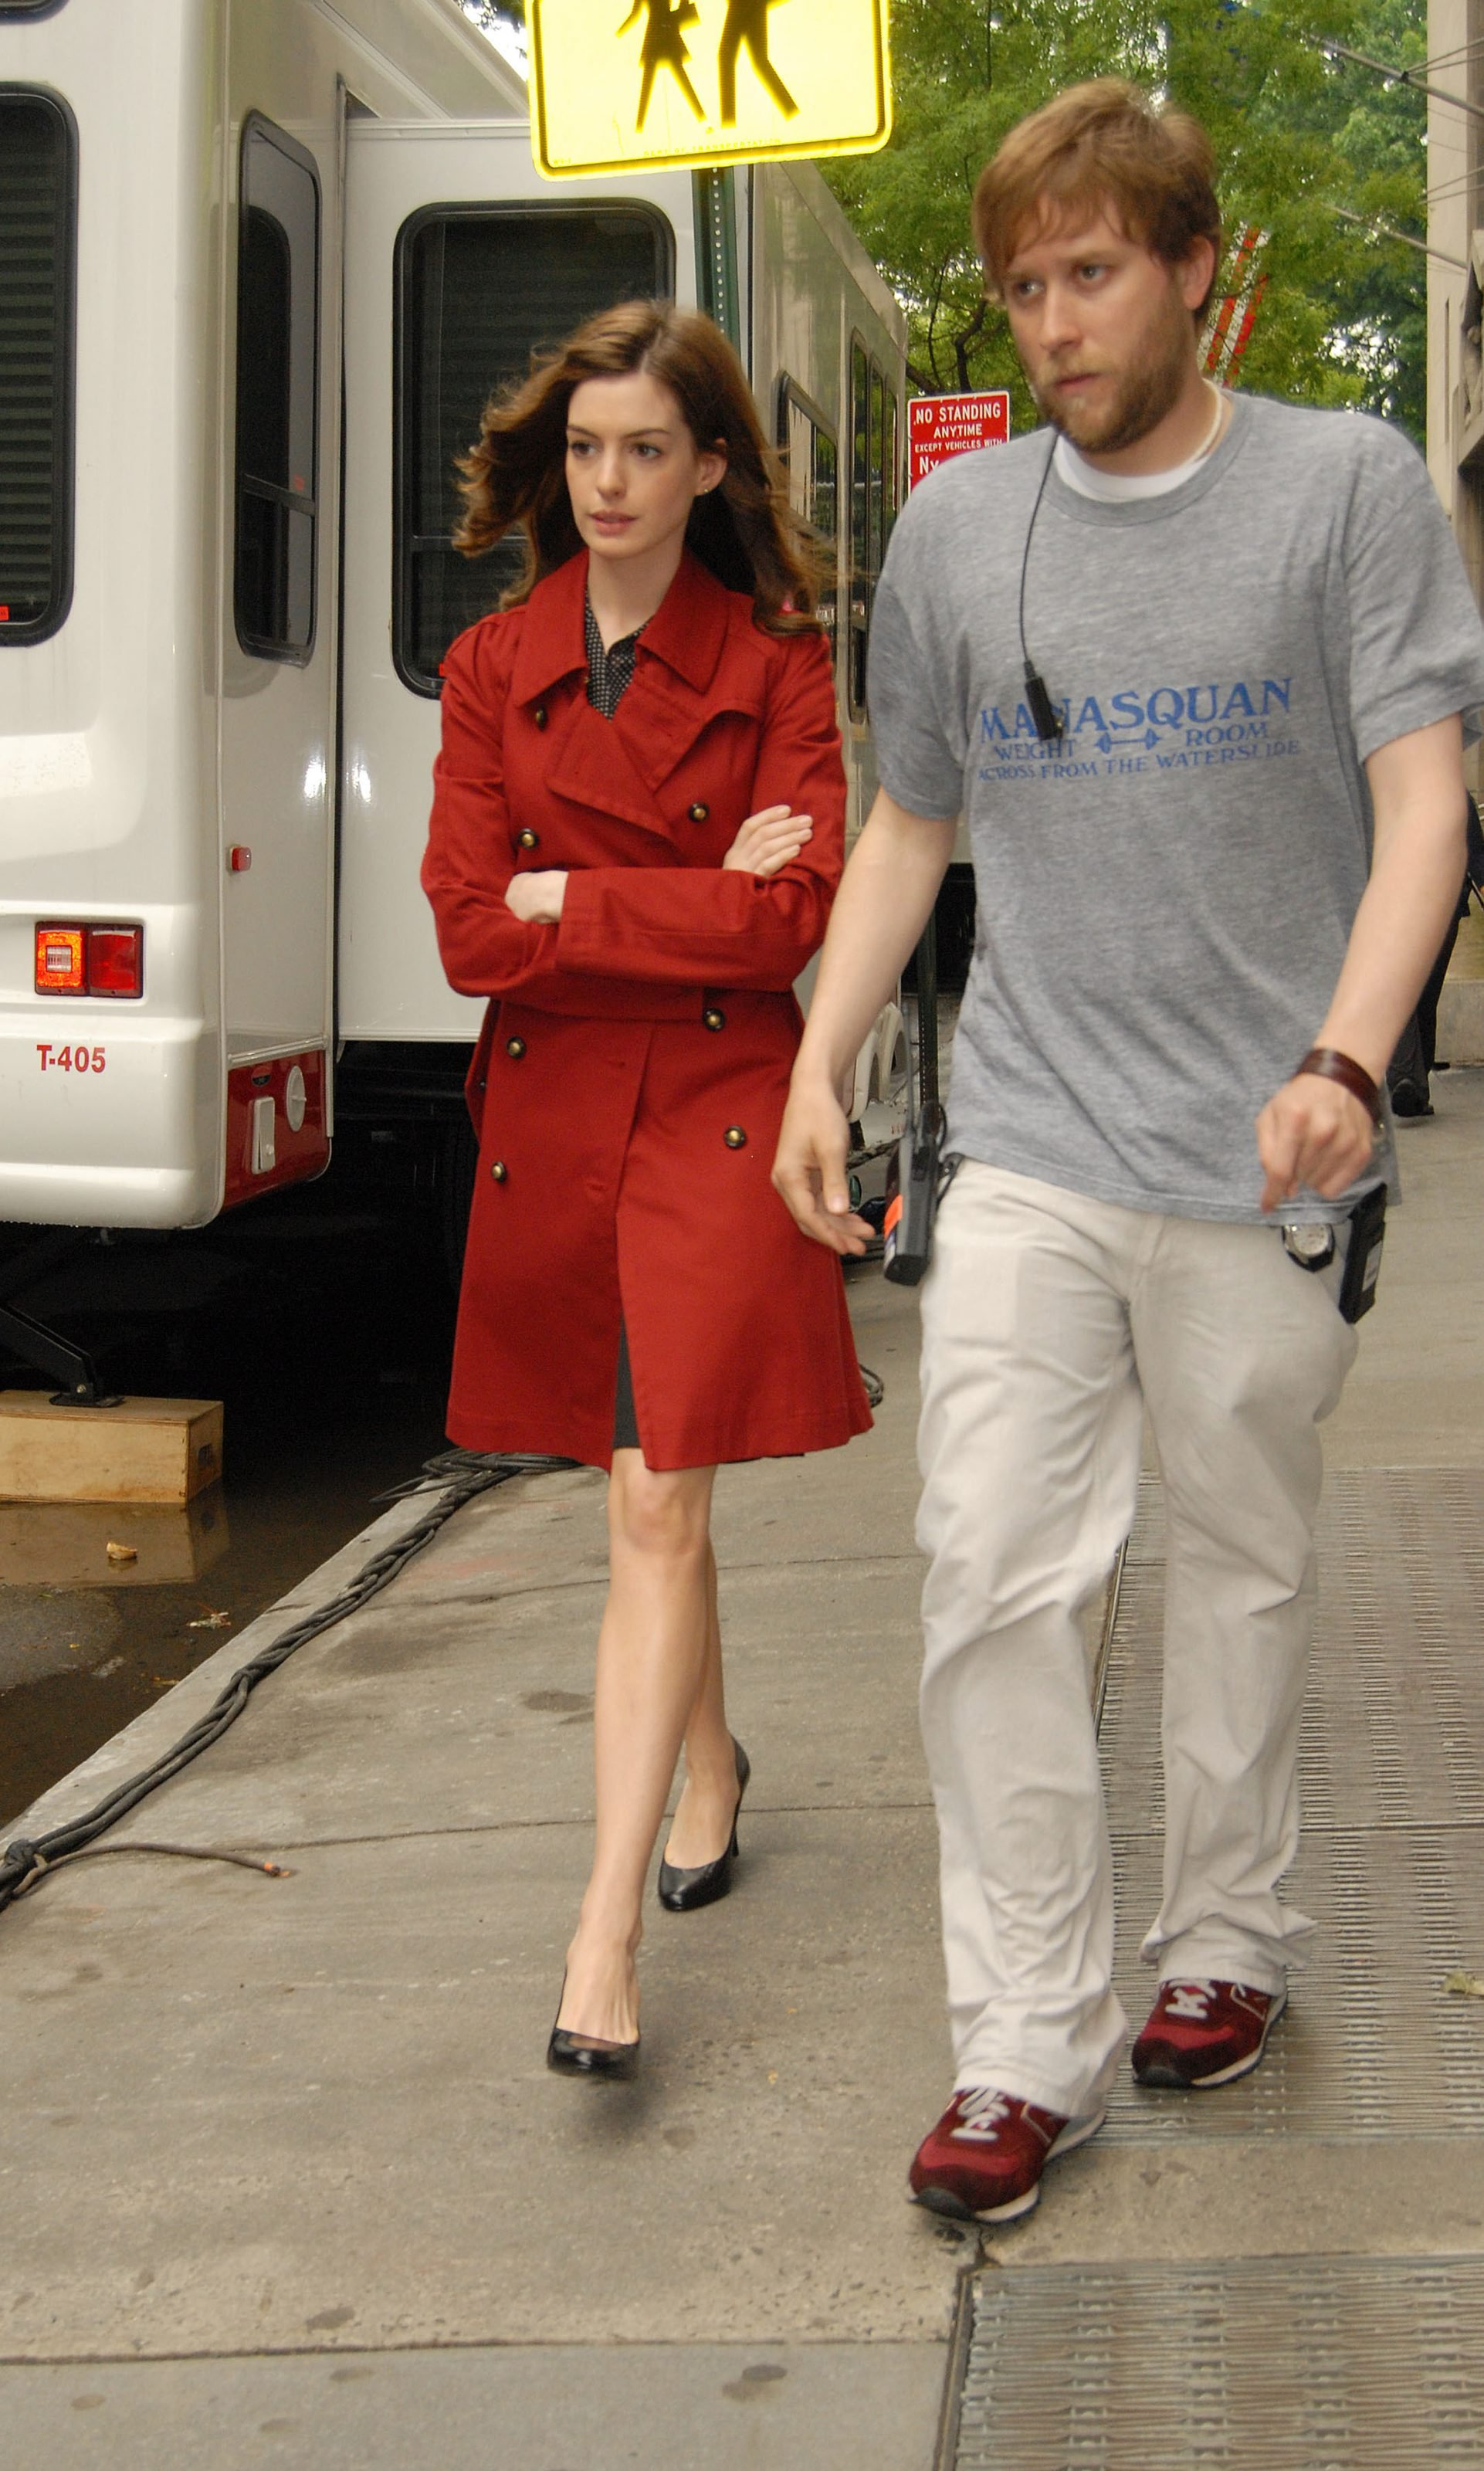 55680_Anne_Hathaway_2008-05-27_-_on_the_set_of_Bride_Wars_in_NY_222_122_138lo.jpg